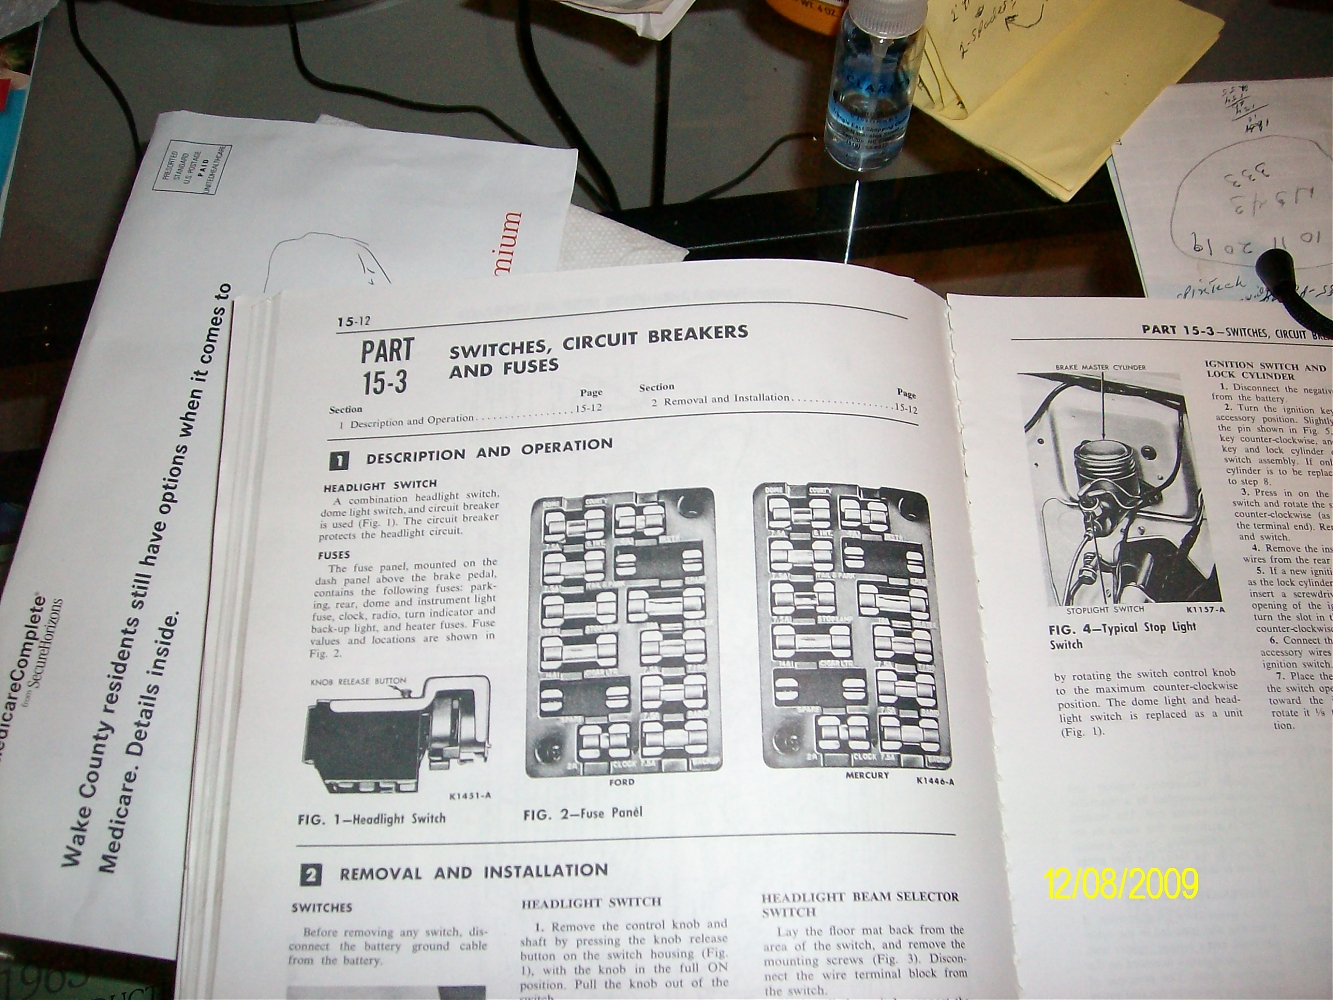 ford 500 fuse box diagram ZUoyCqG ford 500 fuse box diagram image details 1963 ford galaxie fuse box diagram at soozxer.org